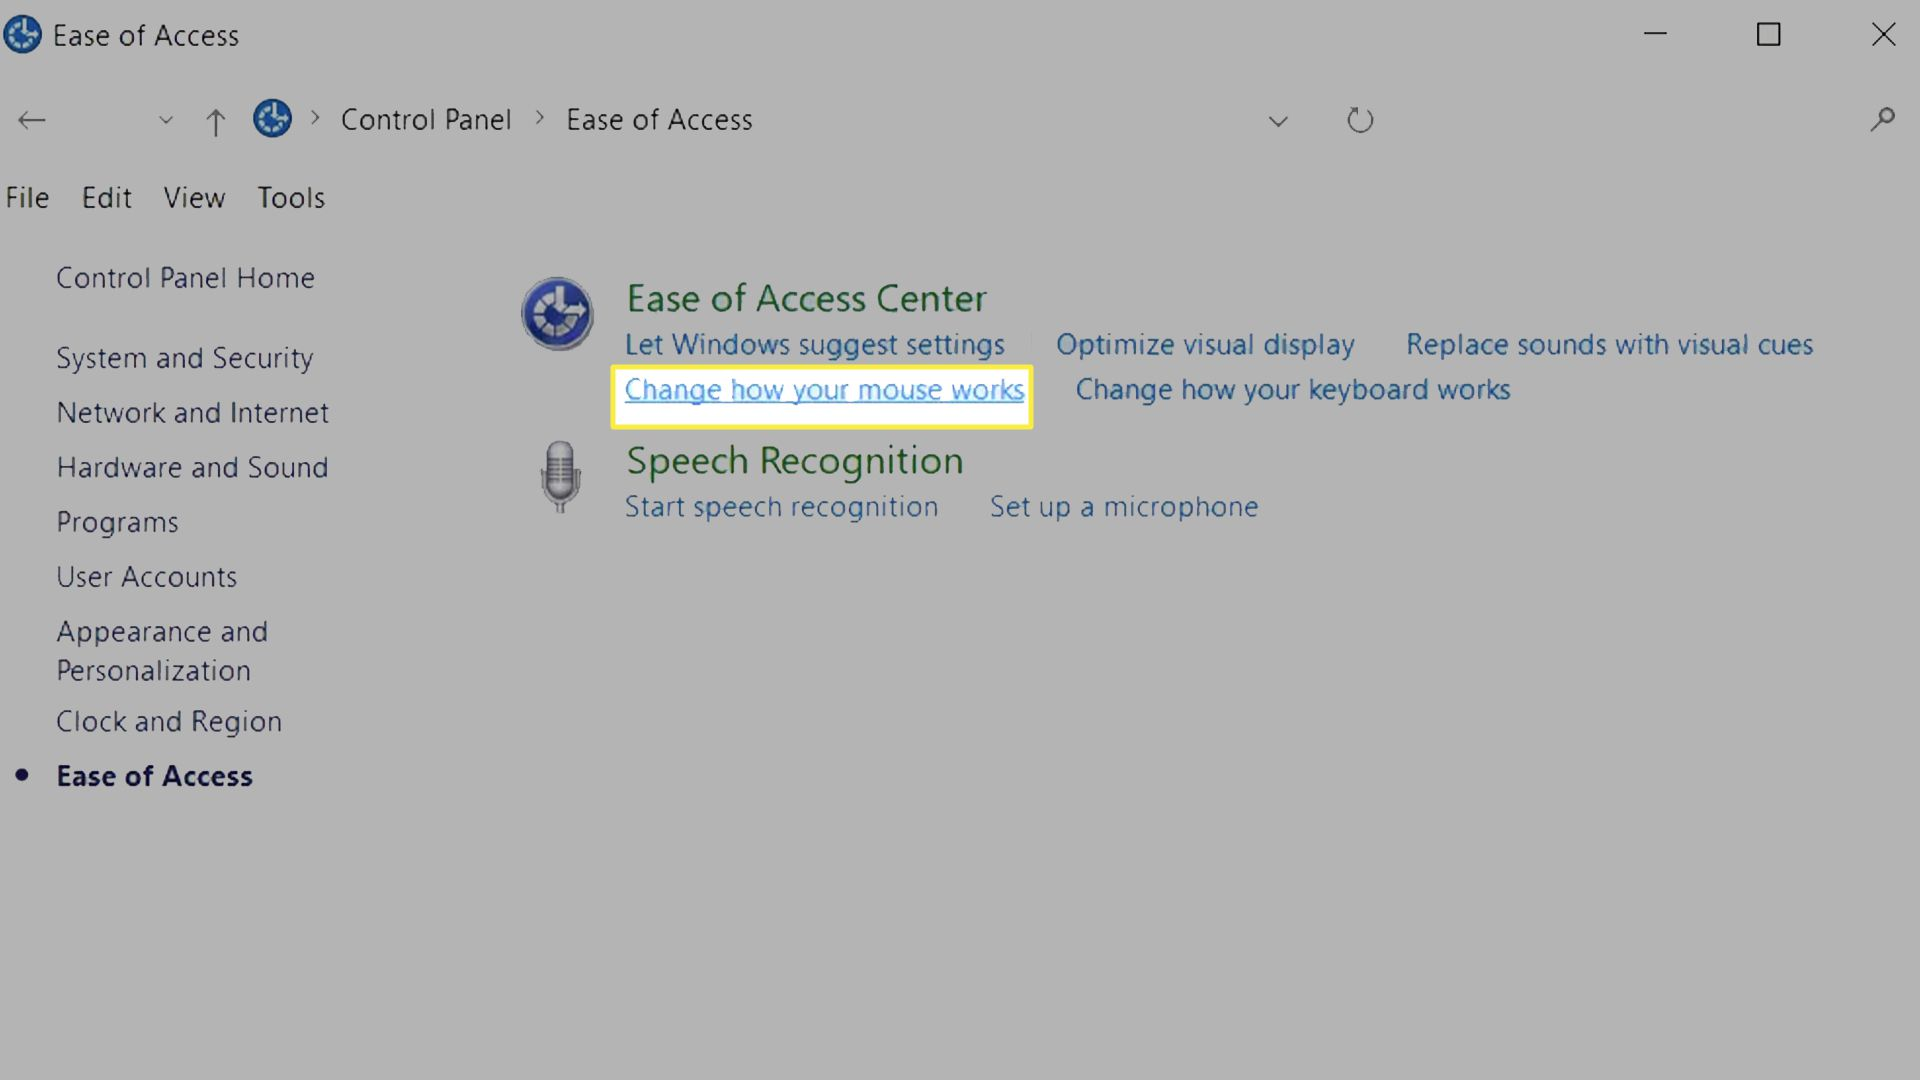 Change how your mouse works highlighted from Windows 10 Ease of Access Center